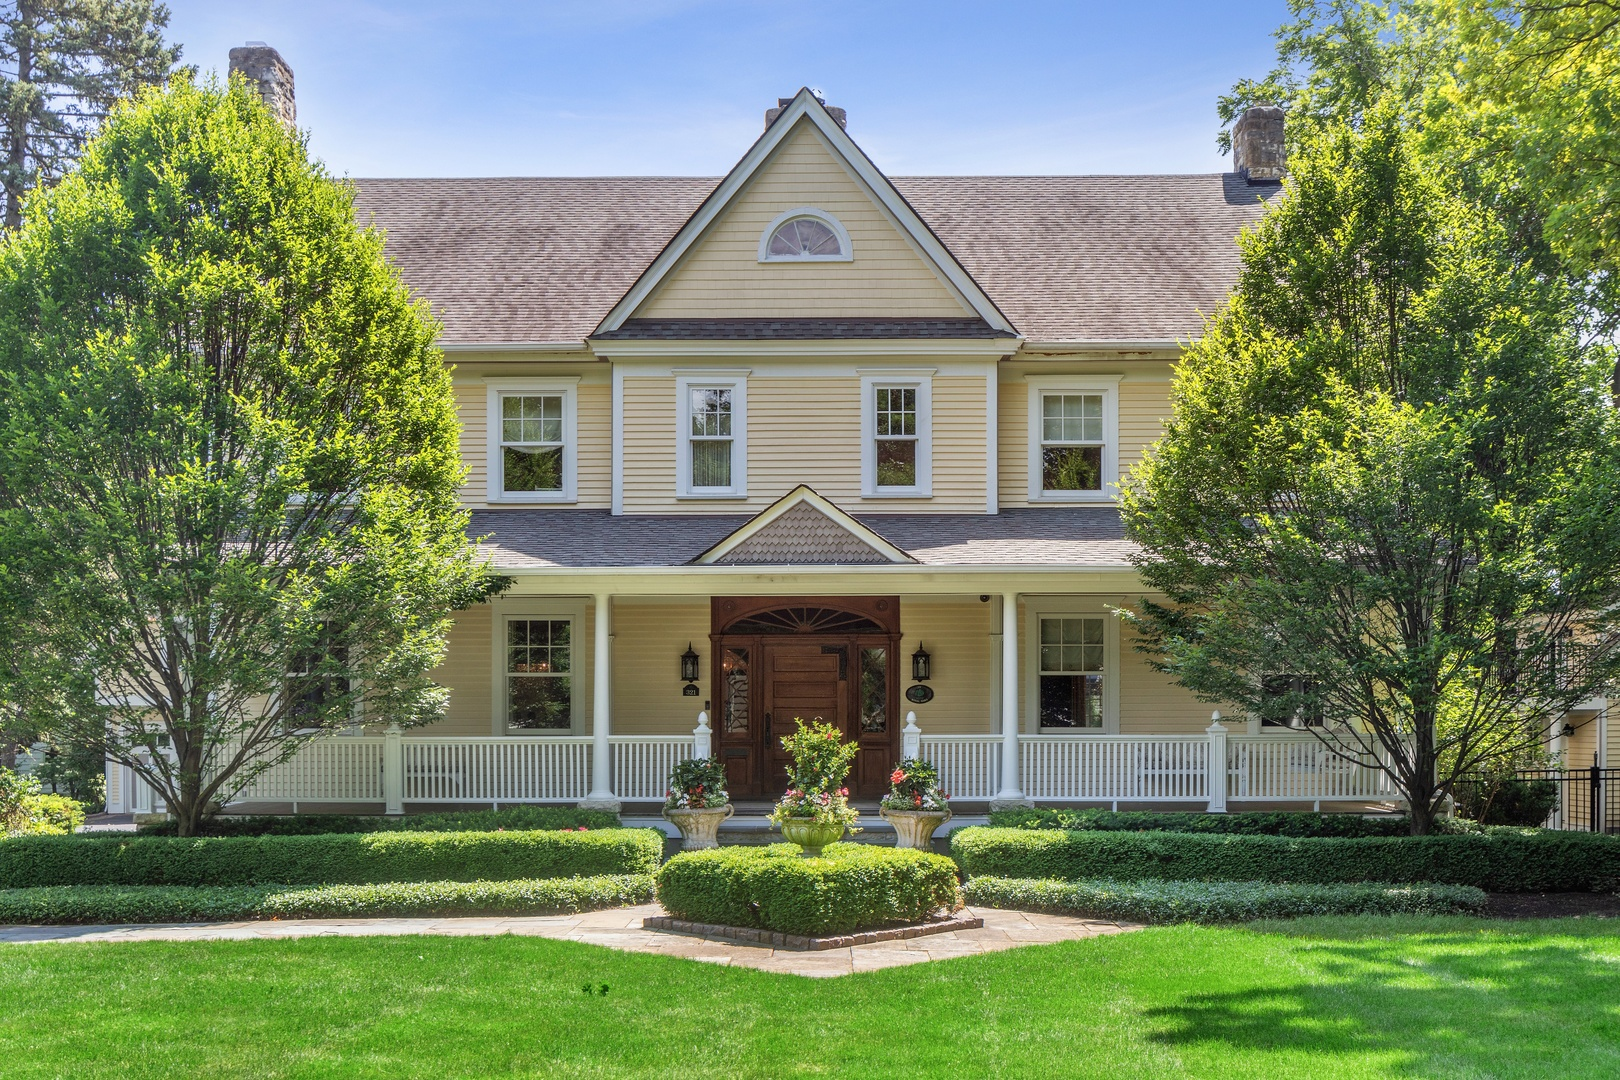 321 South County Line Road, Hinsdale, Illinois 60521